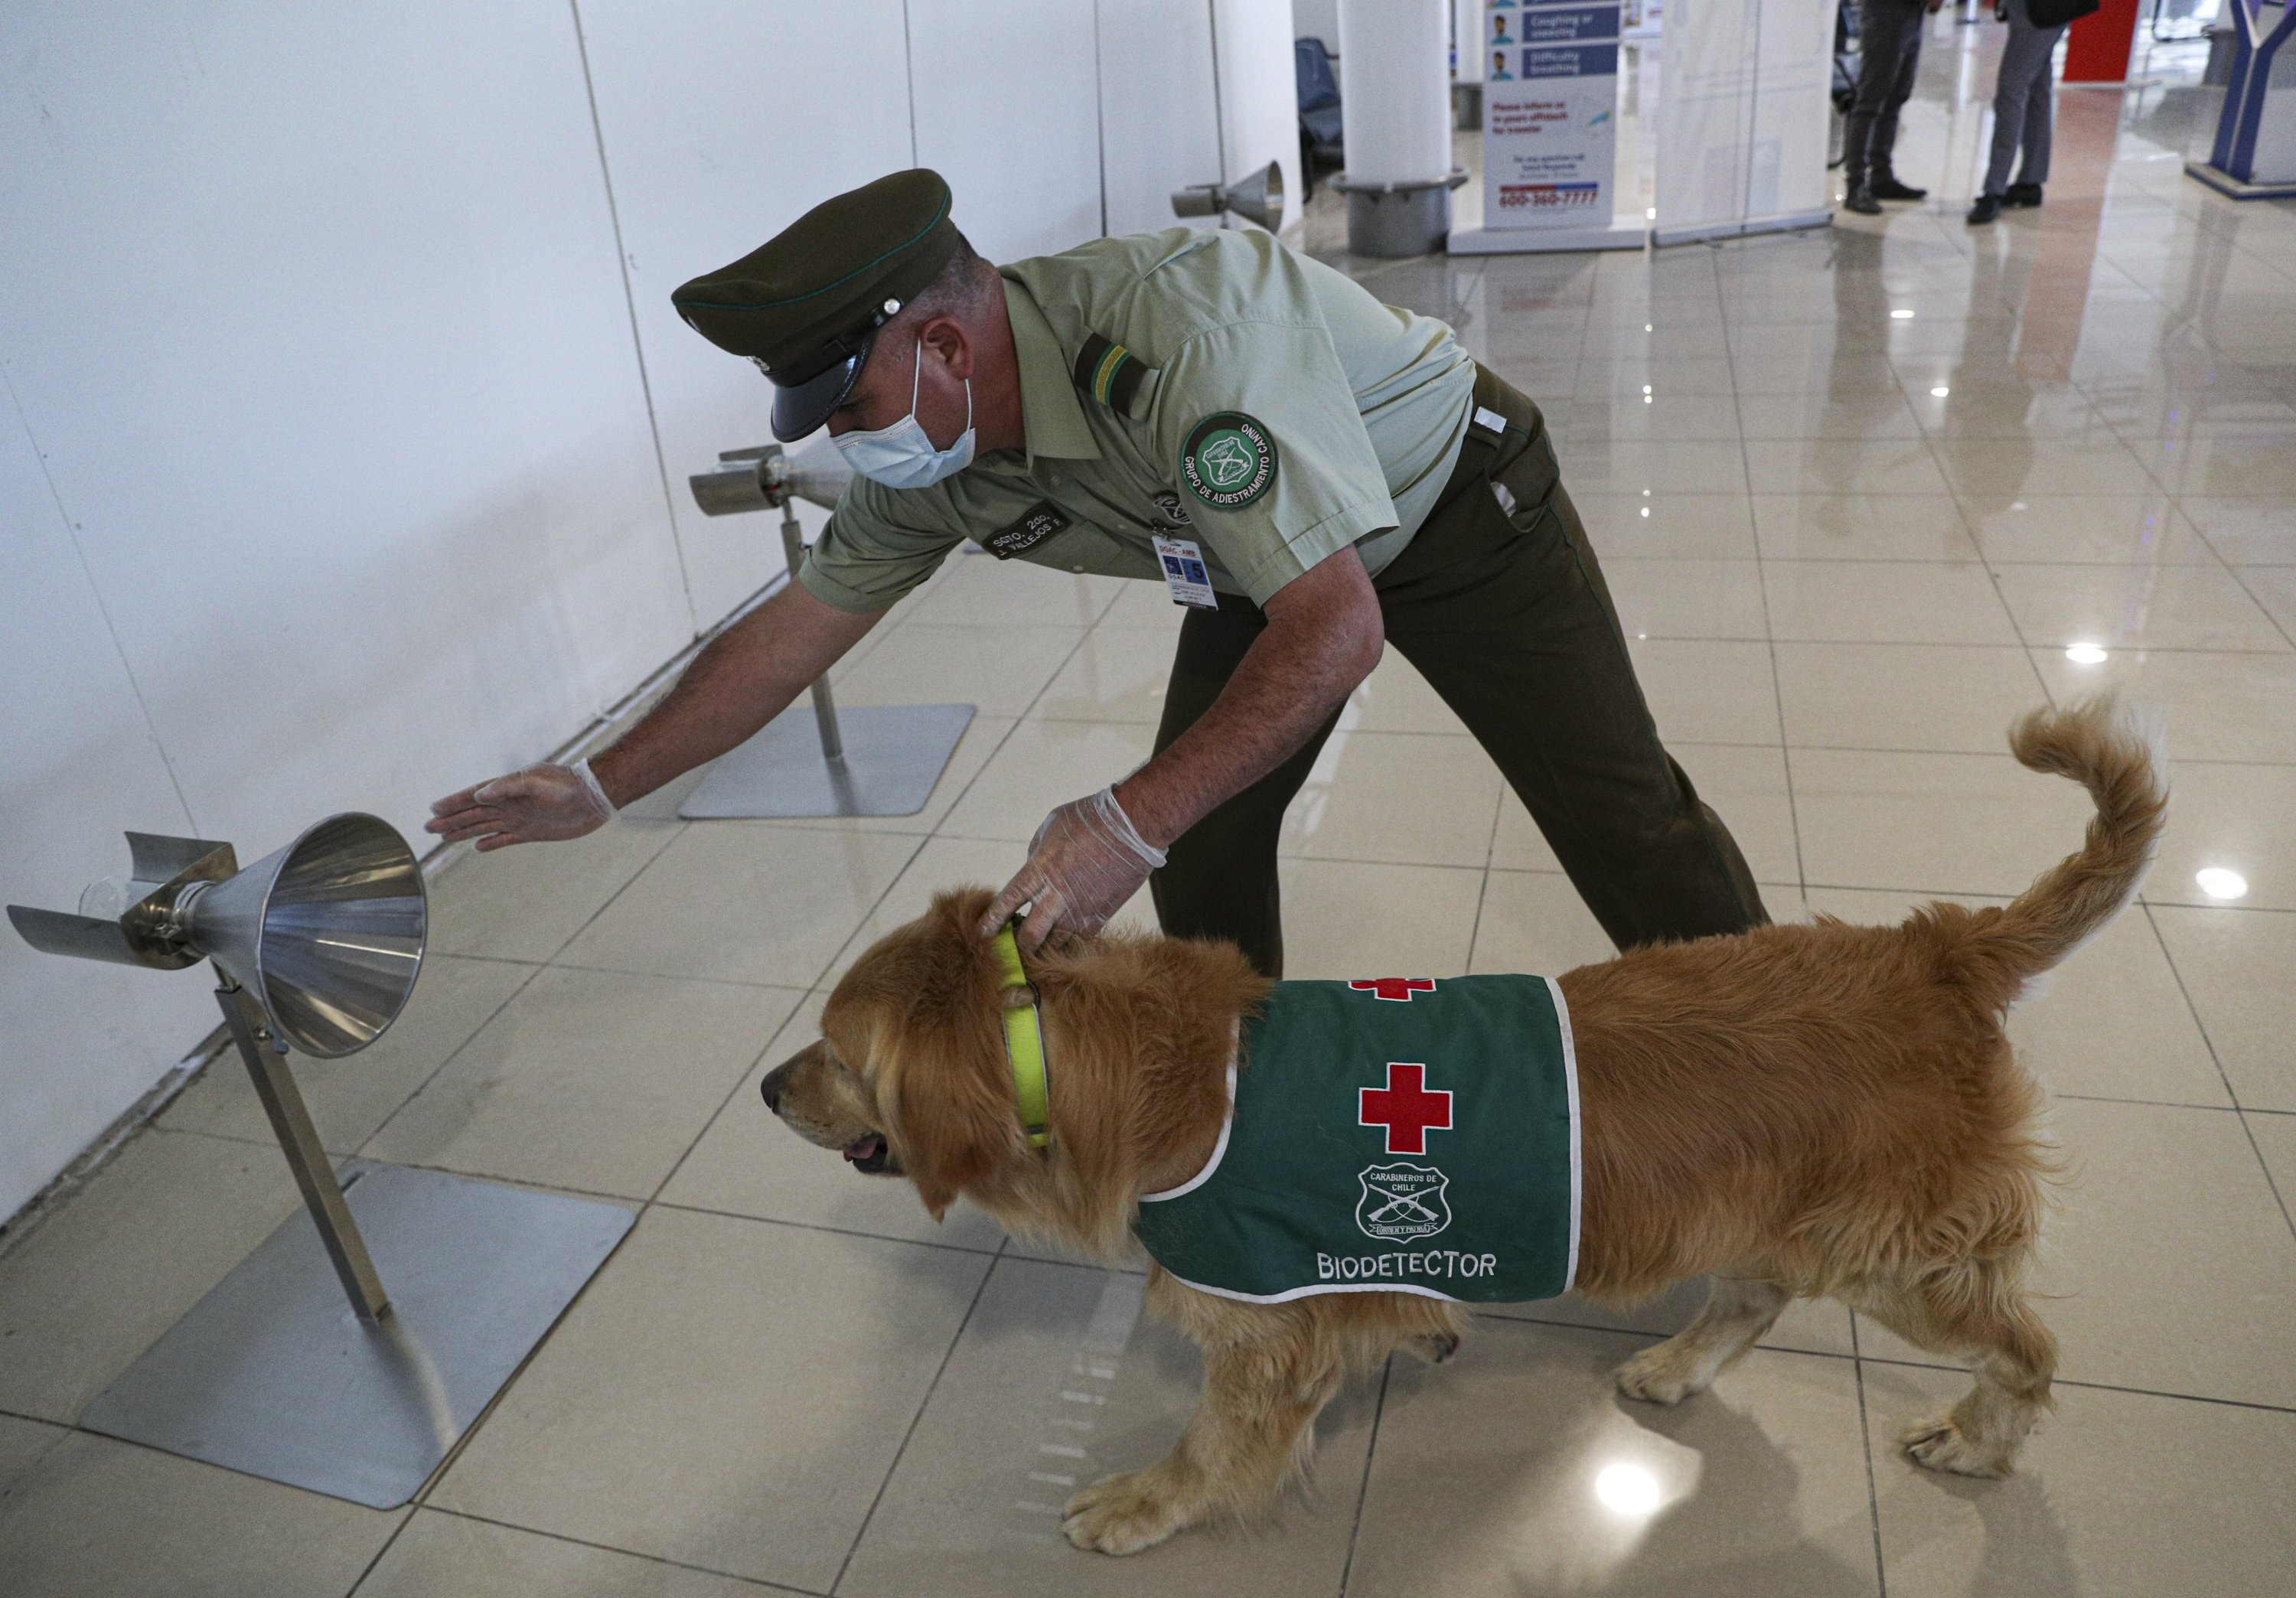 A police handler and his COVID-19 sniffer dog give a demonstration at the Arturo Merino Benítez International Airport in Santiago, Chile, Monday, Dec. 21, 2020. Coronavirus sniffer dogs will start working Tuesday at the airport, according to Interior Minister's office. (AP Photo/Esteban Felix)